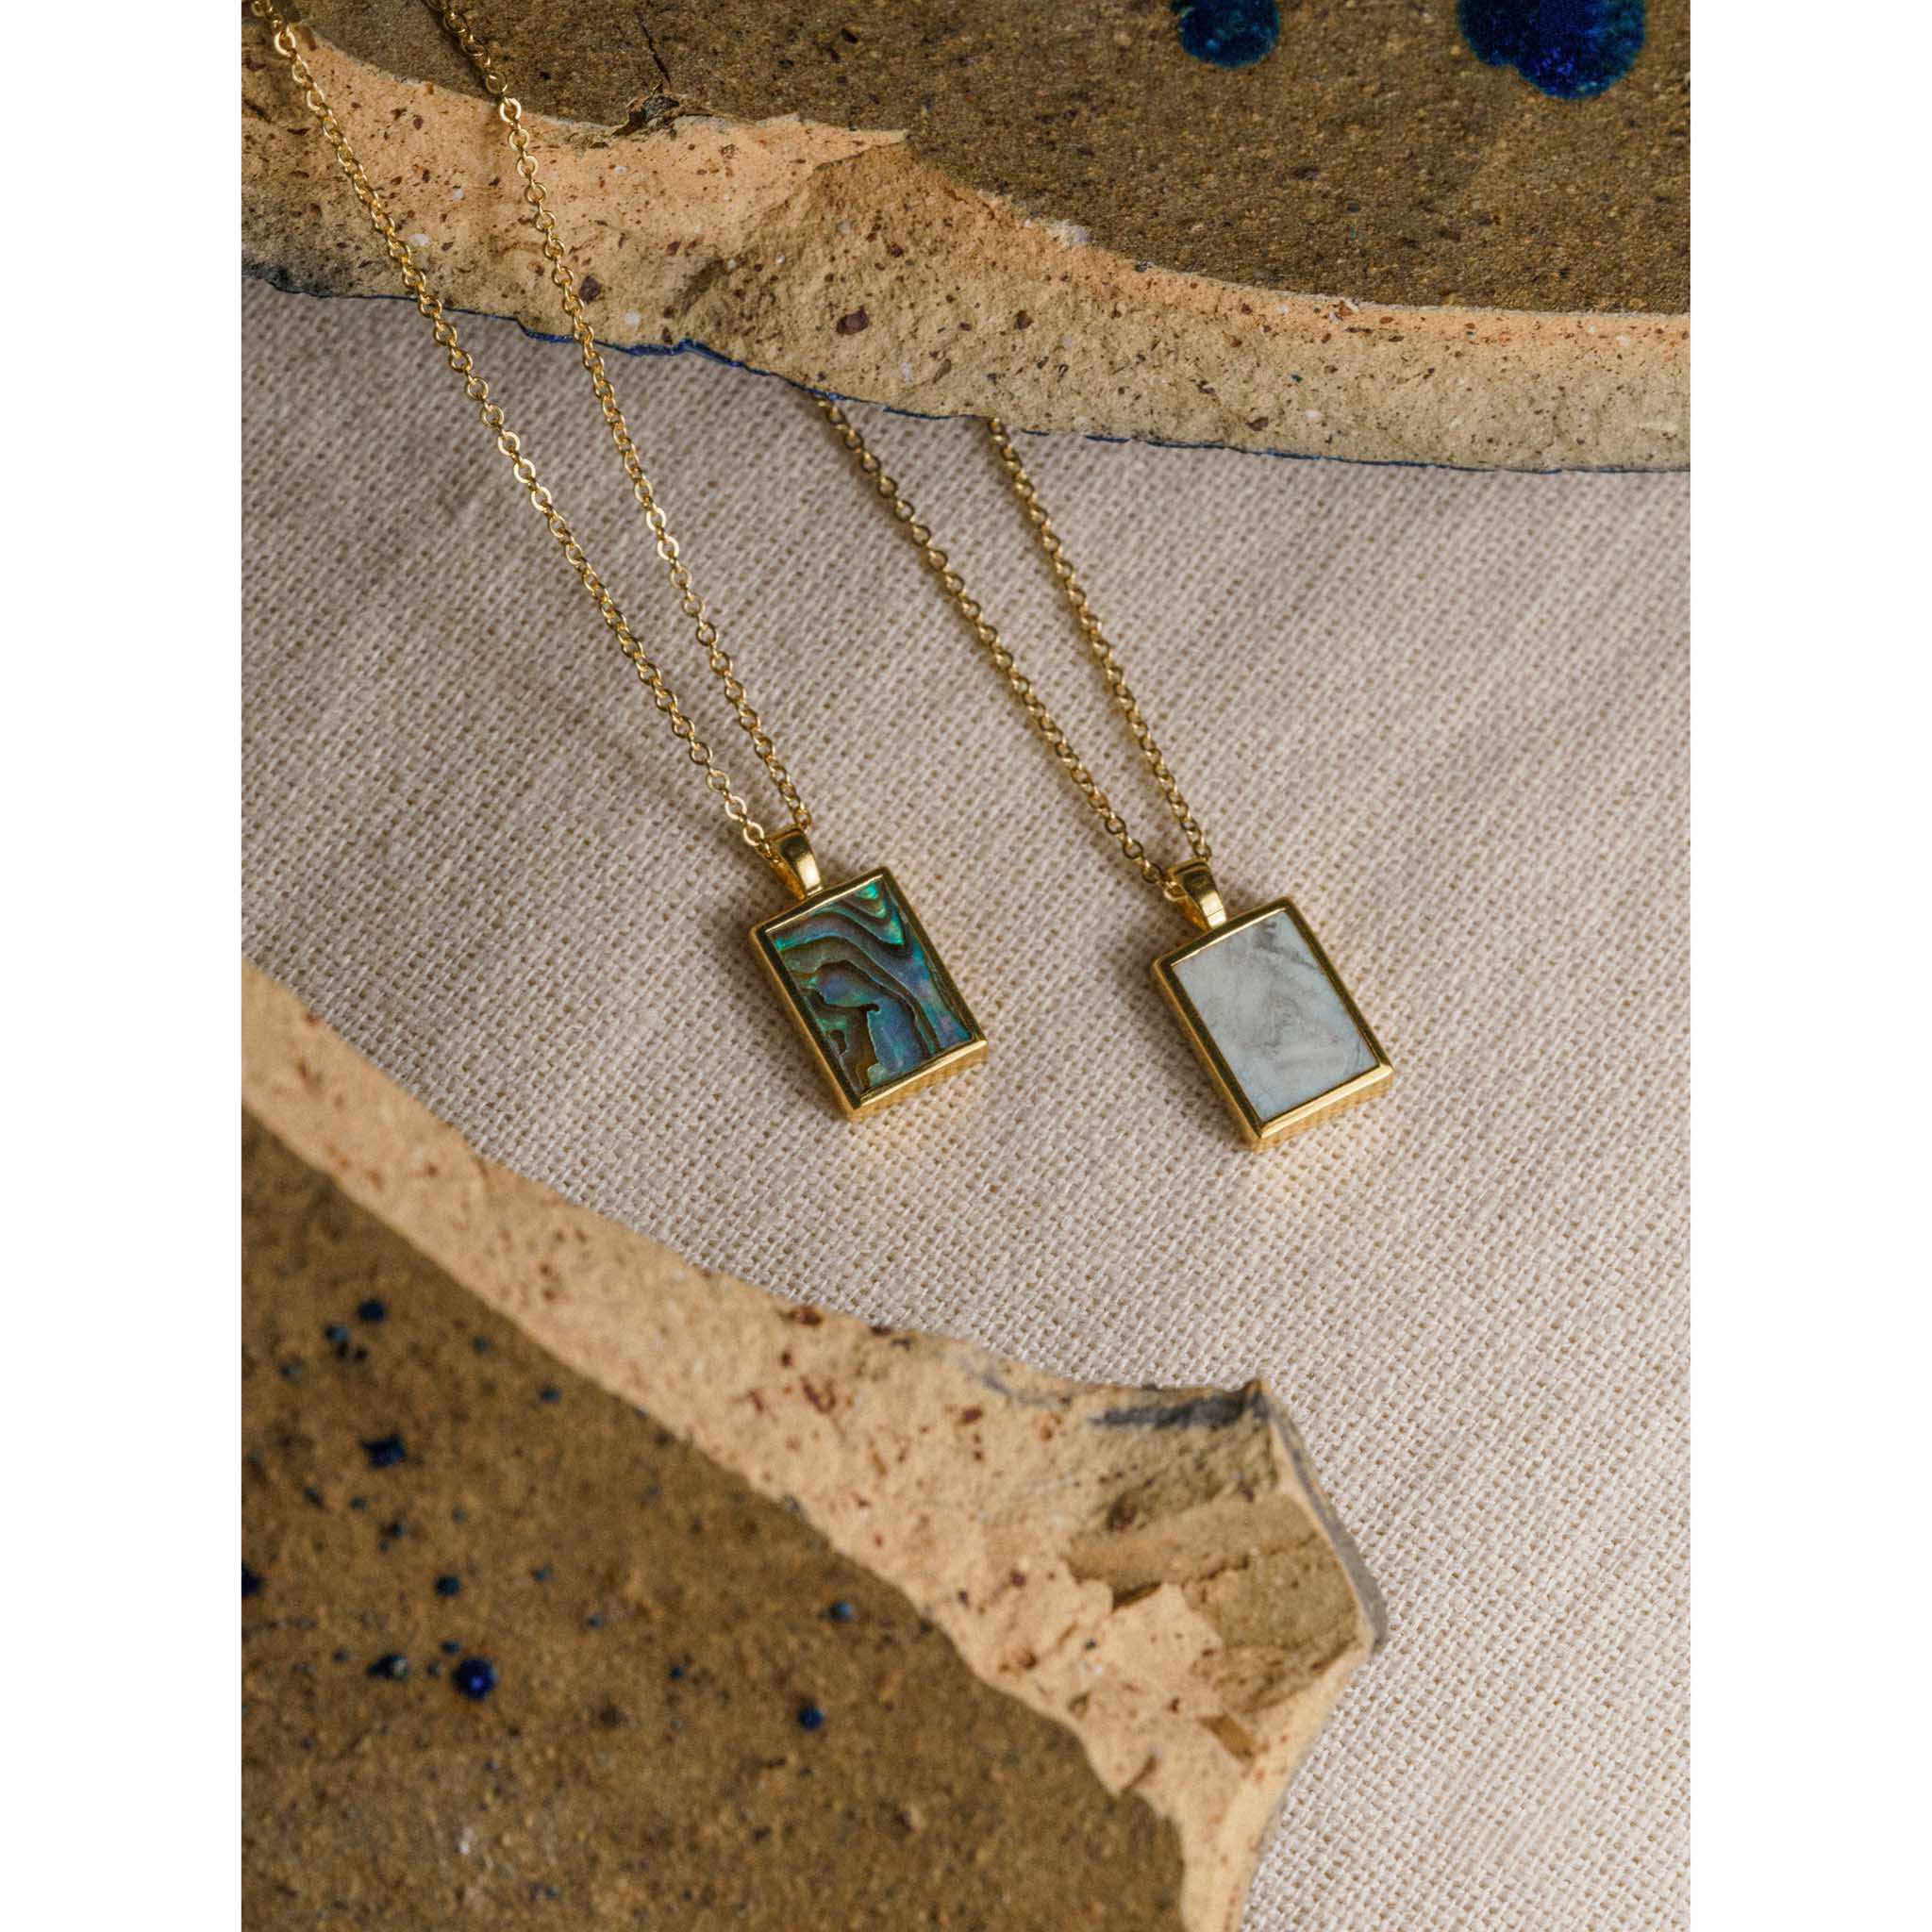 Handmade gold necklace with howlite gemstone pendant. Gemstone necklace ideal for layering with other gold jewellery. Unique jewellery from Wanderlust Life. Minimalist jewellery made in Devon in the UK.